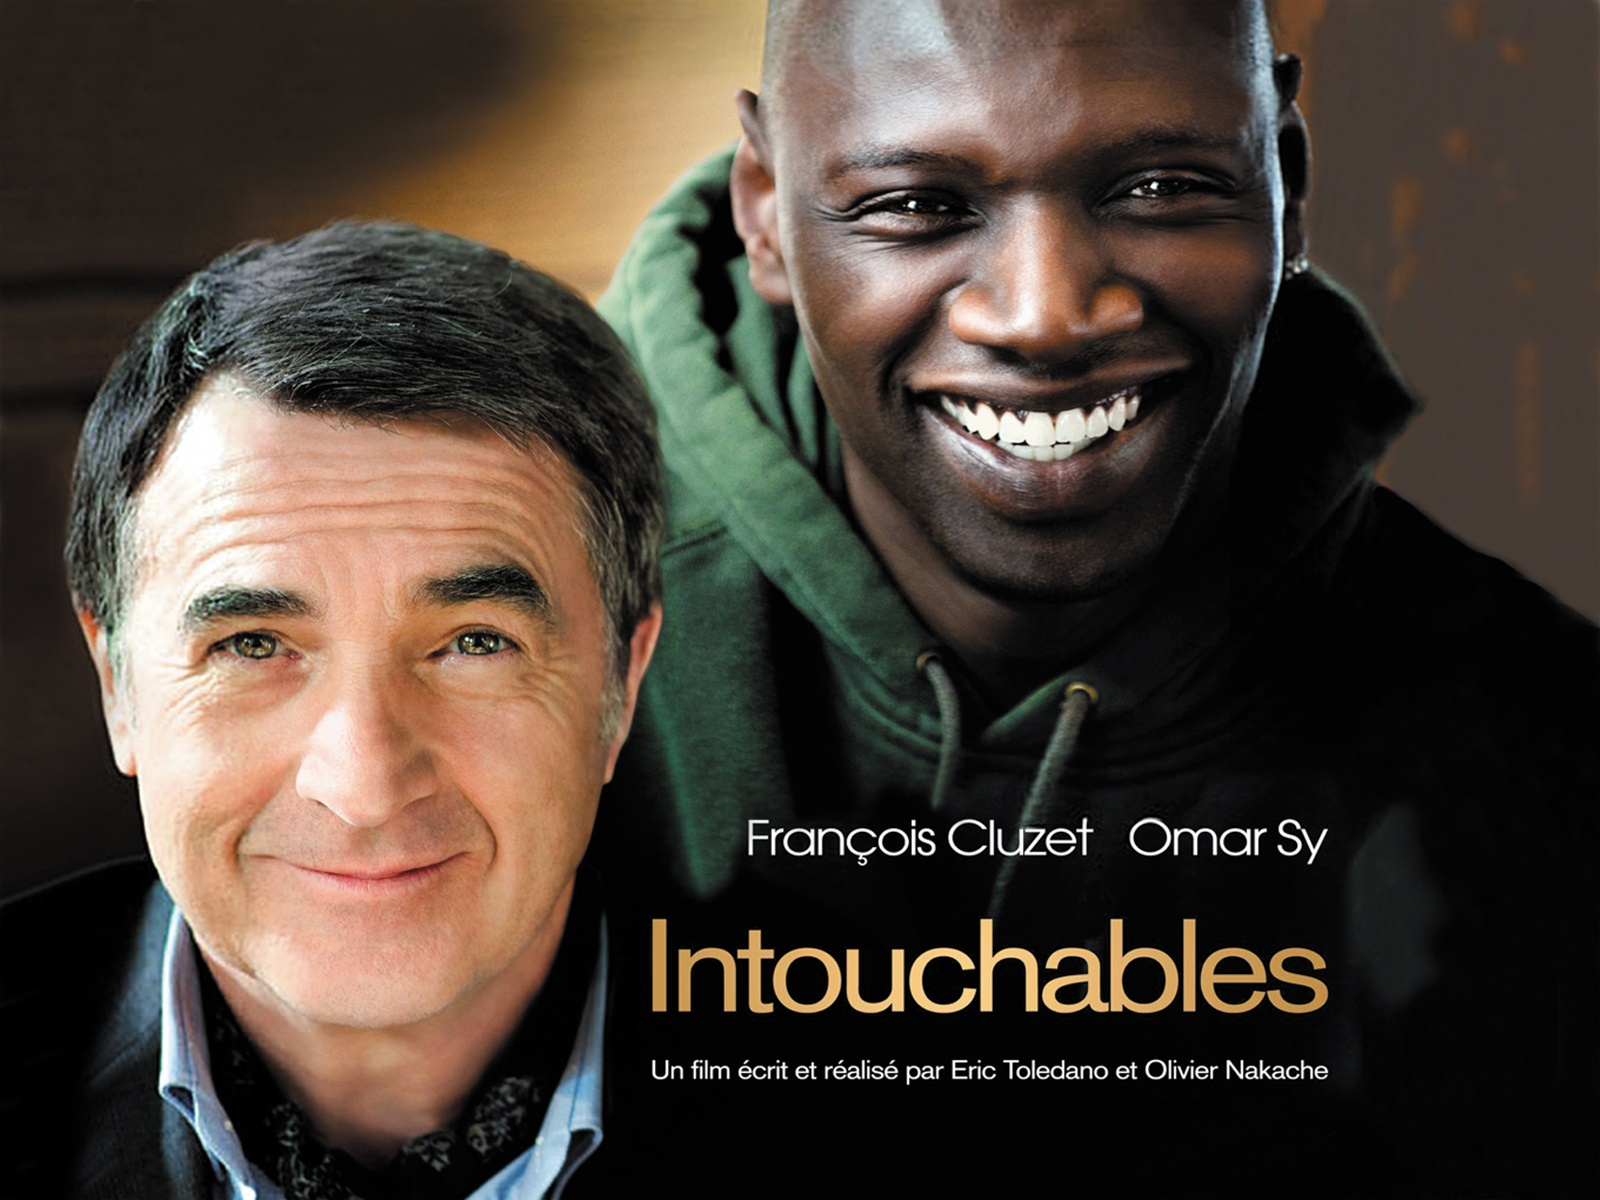 Movie: The Intouchables